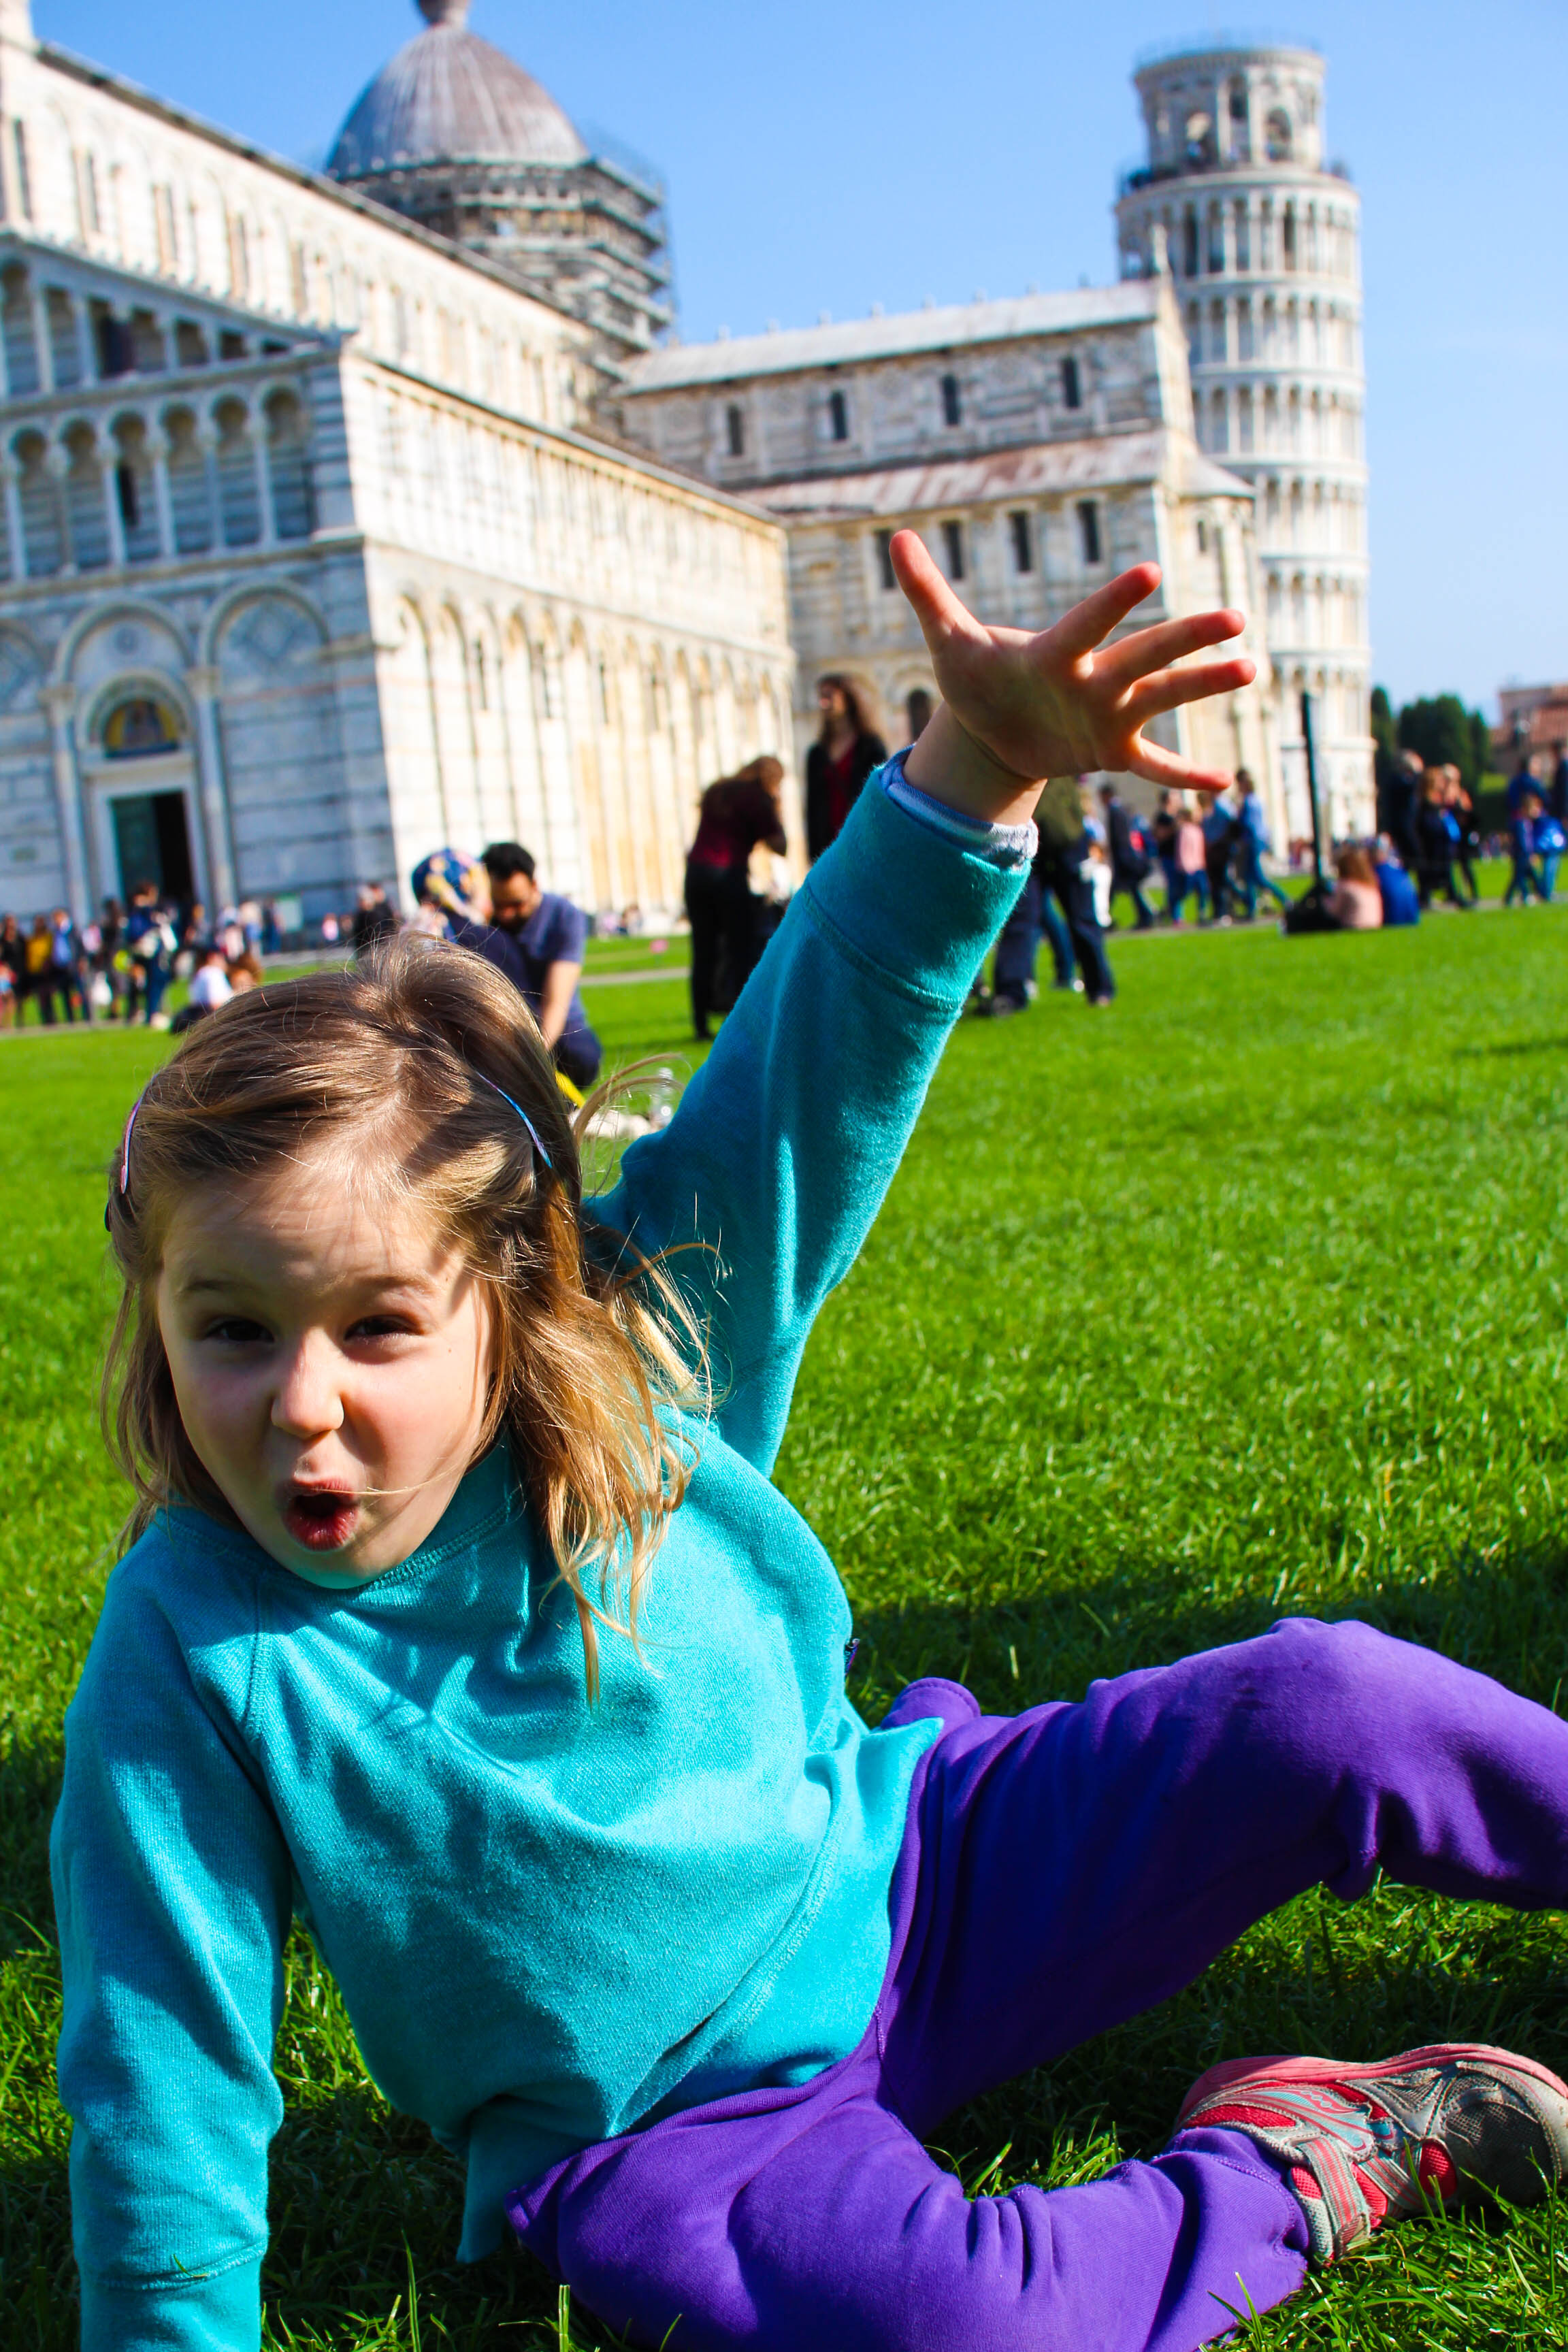 Finding some great green space to play in Pisa